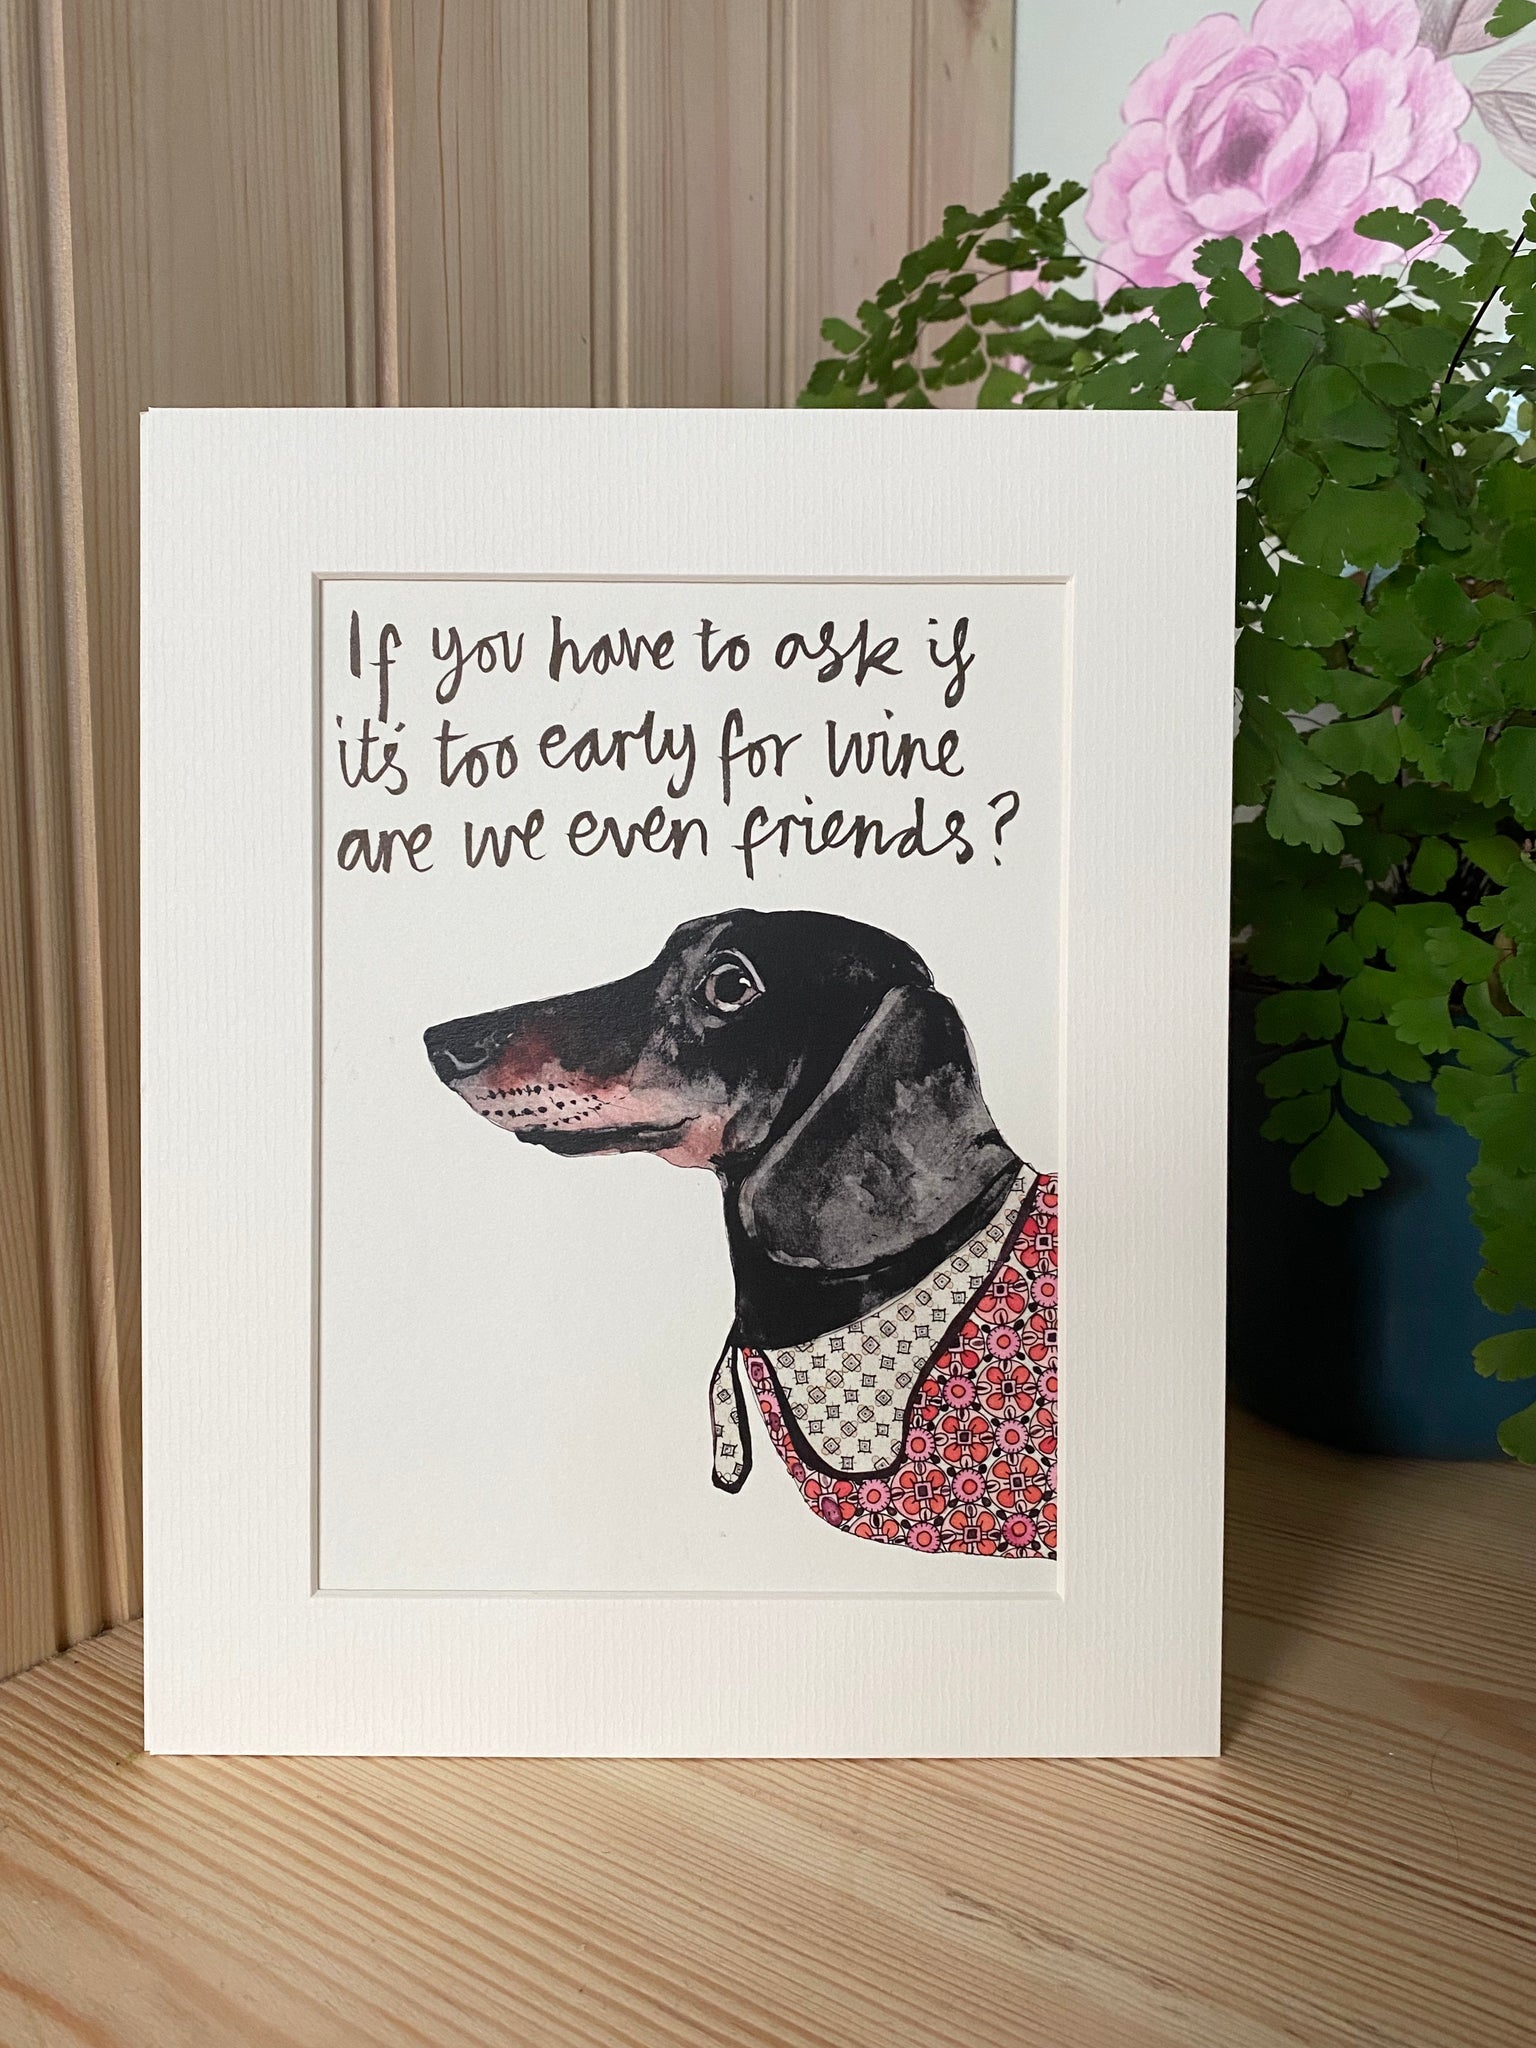 """If you have to ask if it's too early for wine are we even friends?"" Sausage Dog print"